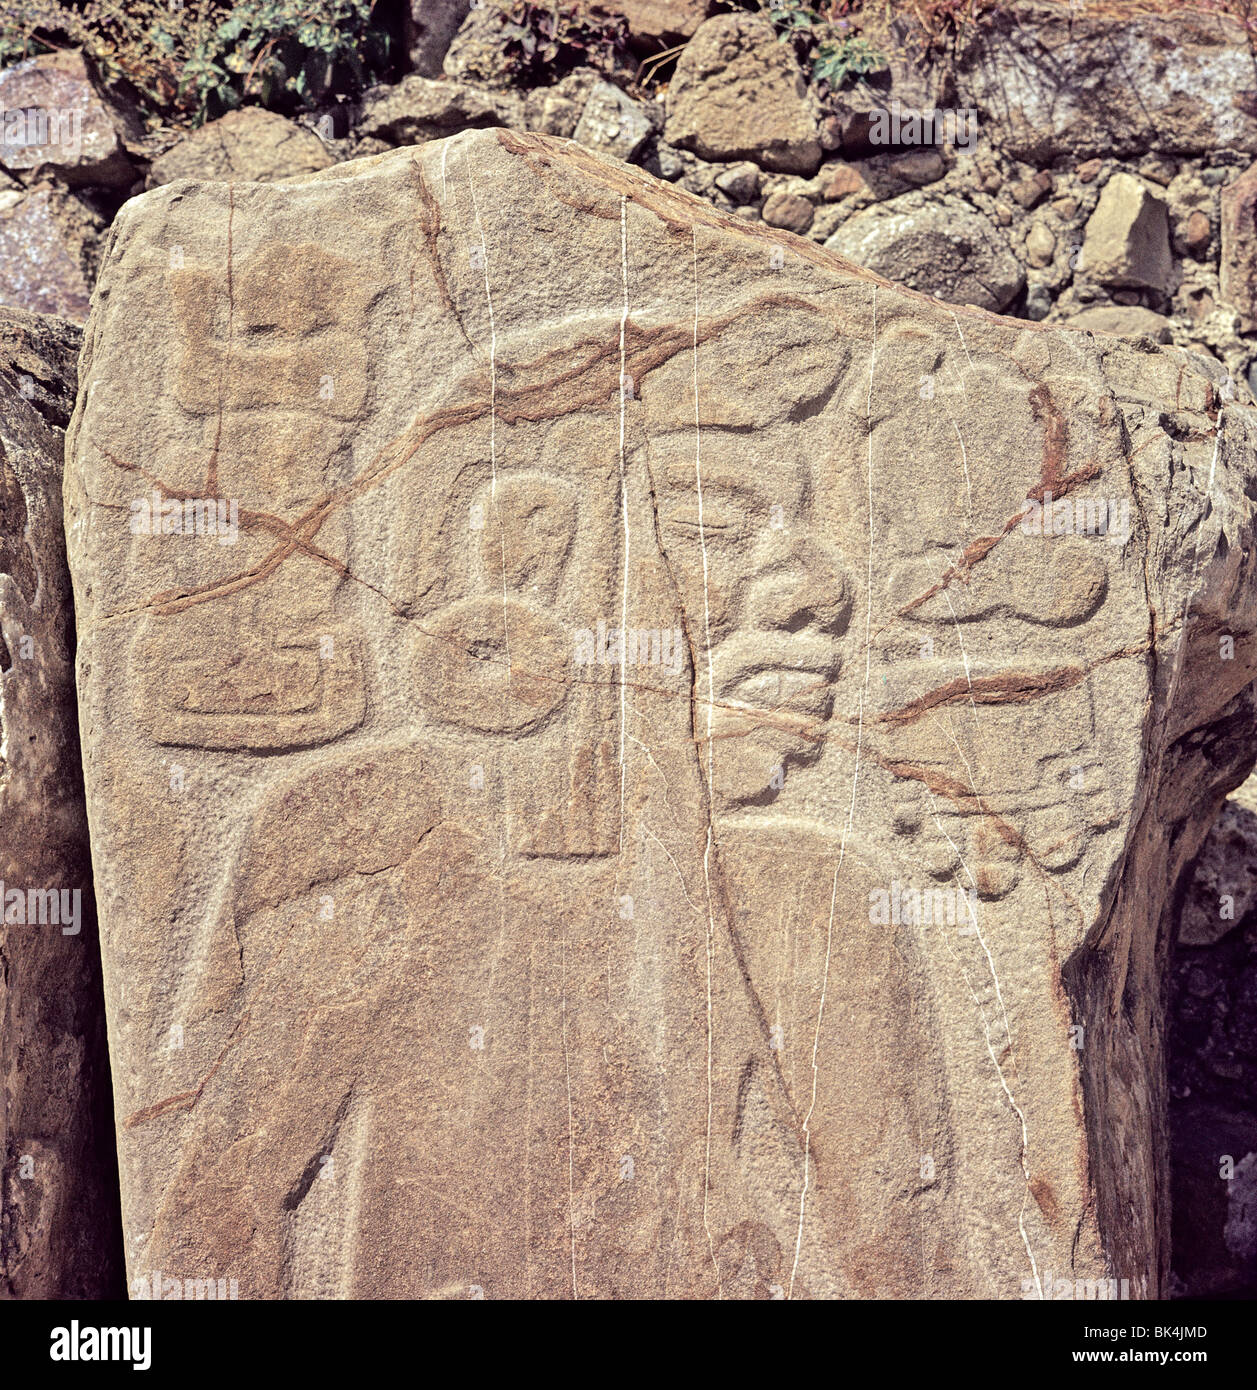 Tablero of a Dancer from Sculptural Program at Building of Danzantes Monte Alban Archaeological Site State of Oaxaca - Stock Image